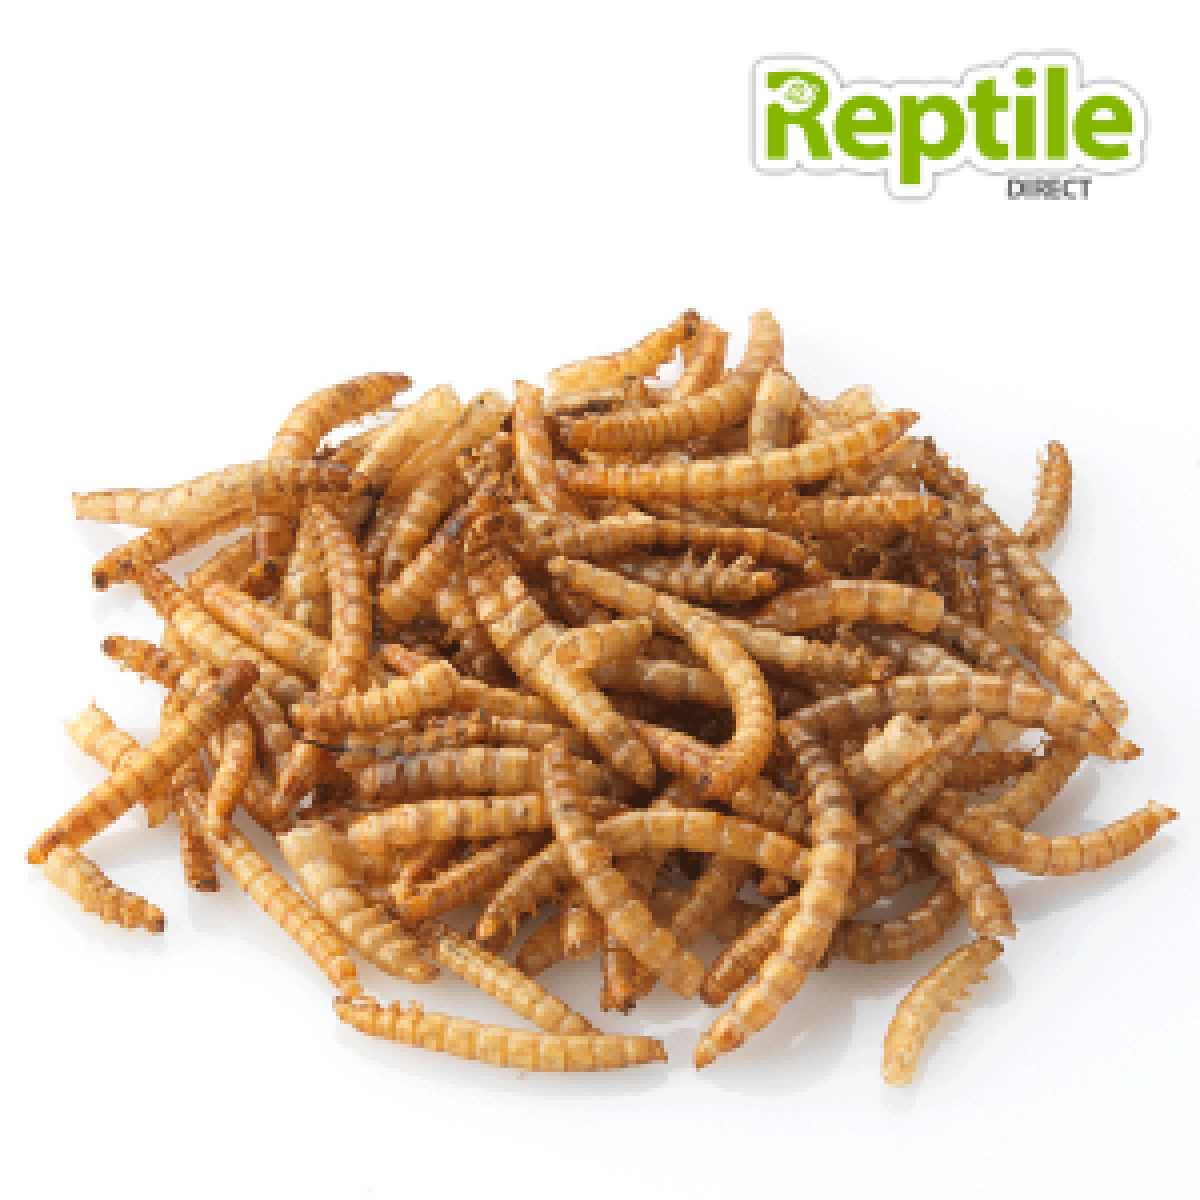 10-15mm Live Meal Worms